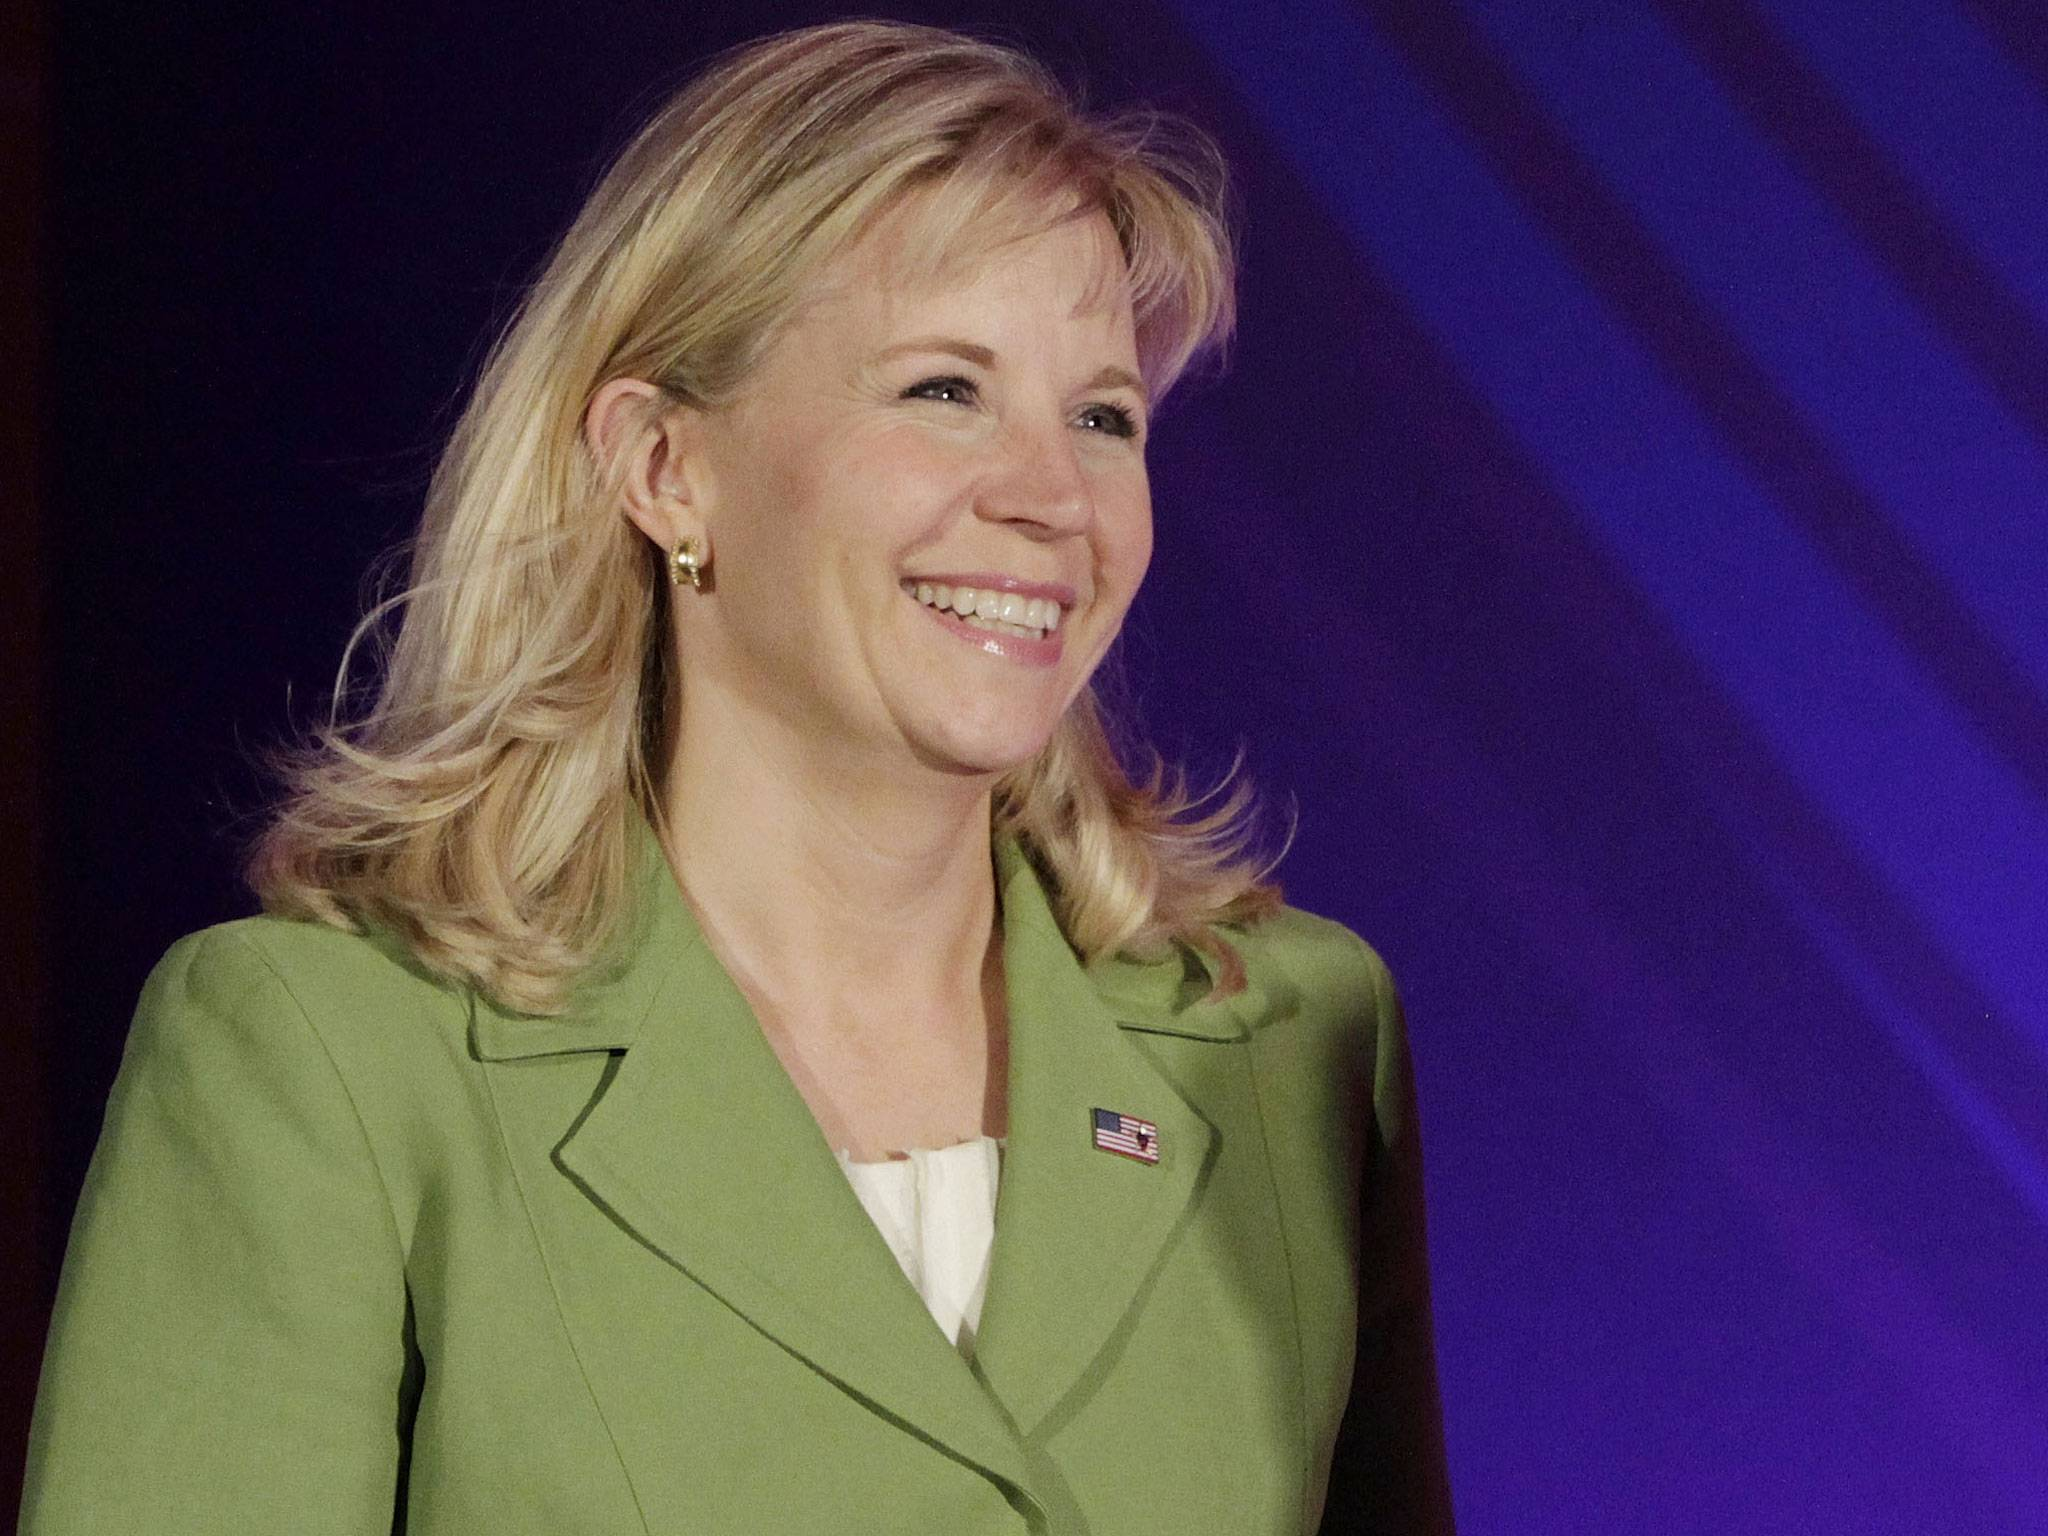 Popular Conservative Liz Cheney to Run for Congress